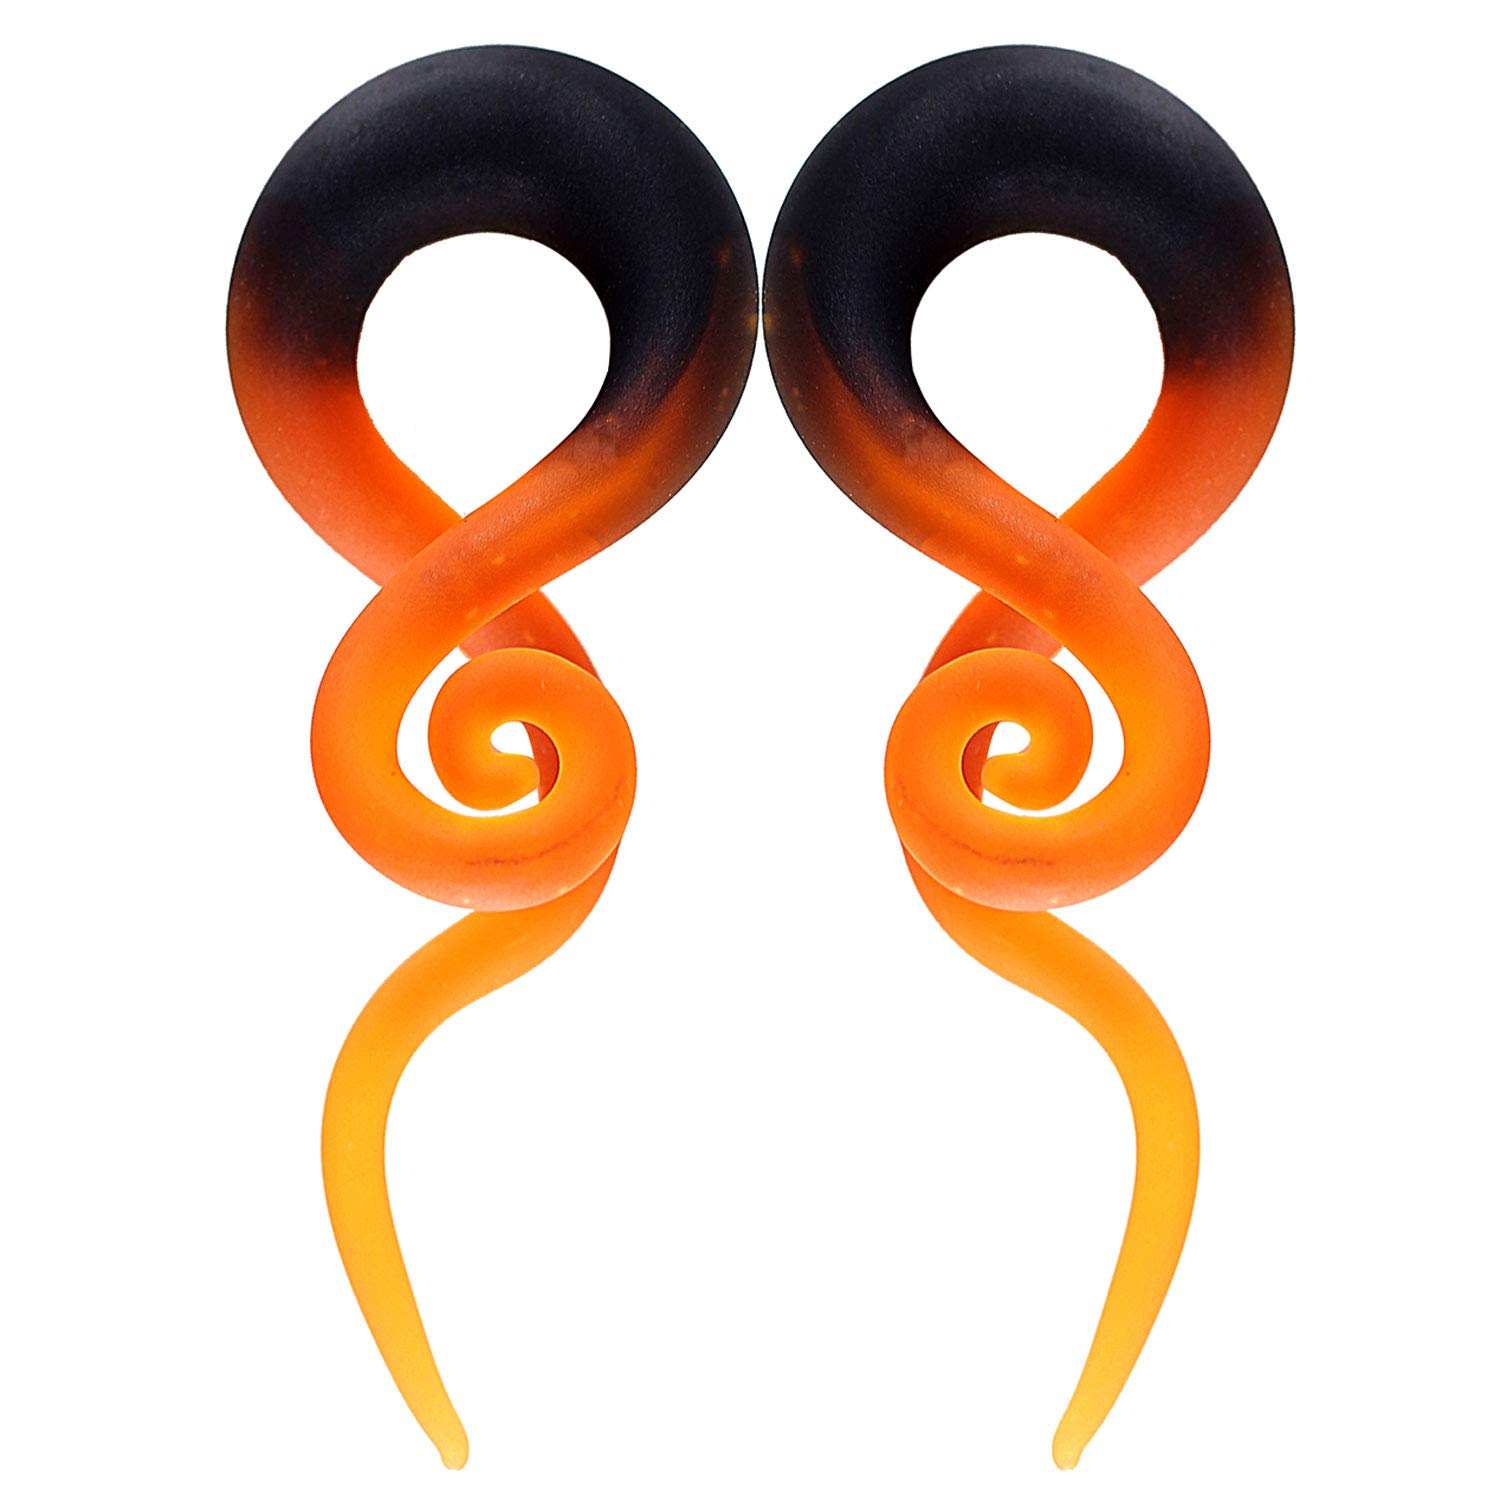 BodyJ4You 2PC Glass Ear Tapers Plugs 4G-16mm Black Orange Fire Handmade Gauges Piercing Jewelry Set TP7114-00G